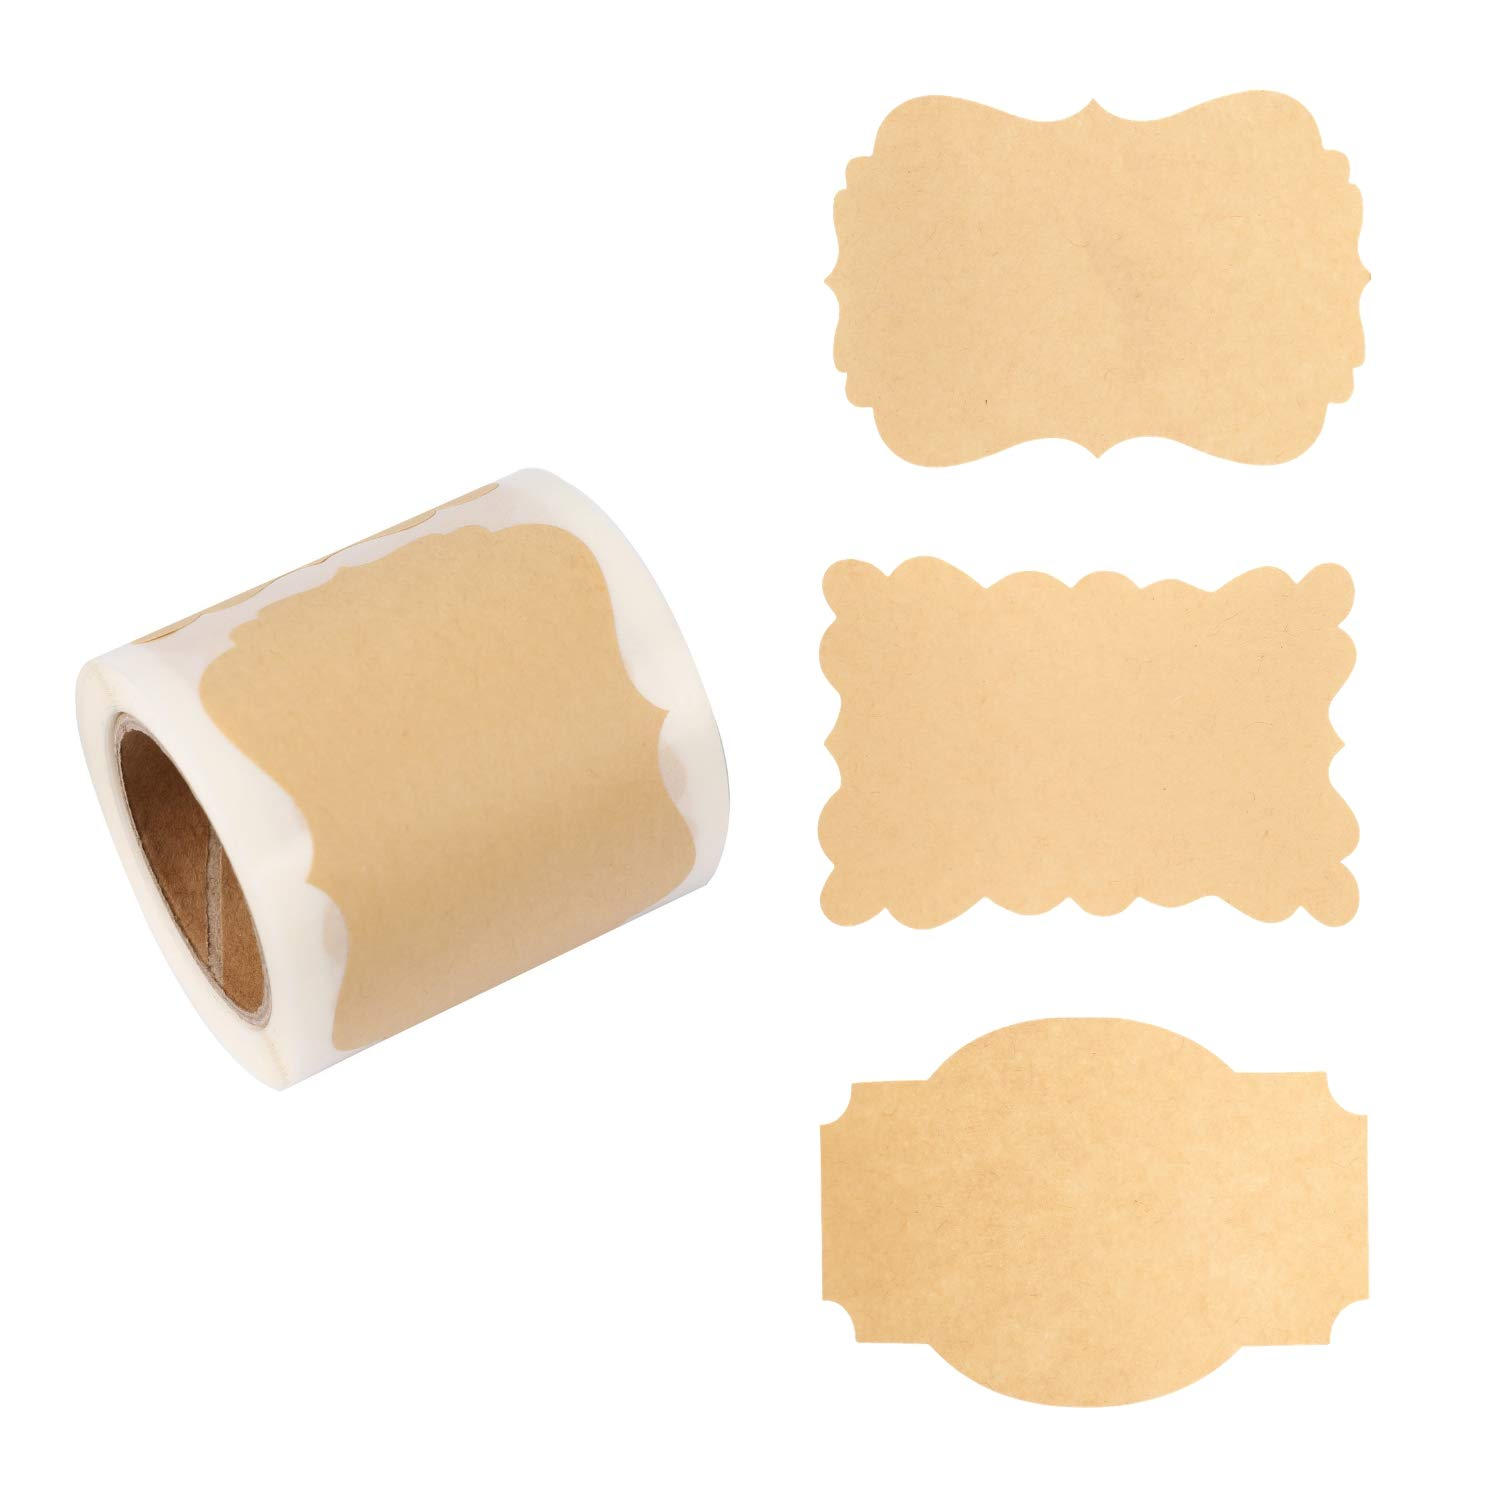 """Houseables Label Stickers, Labels for Jars, 2"""" x 3"""", 100/Roll, Brown, Paper, Self-Adhesive, Kraft Blank Sticker, Peel, Stick On, Write, Use with Canning Jar, All Purpose, Product, Labeling, Candle"""